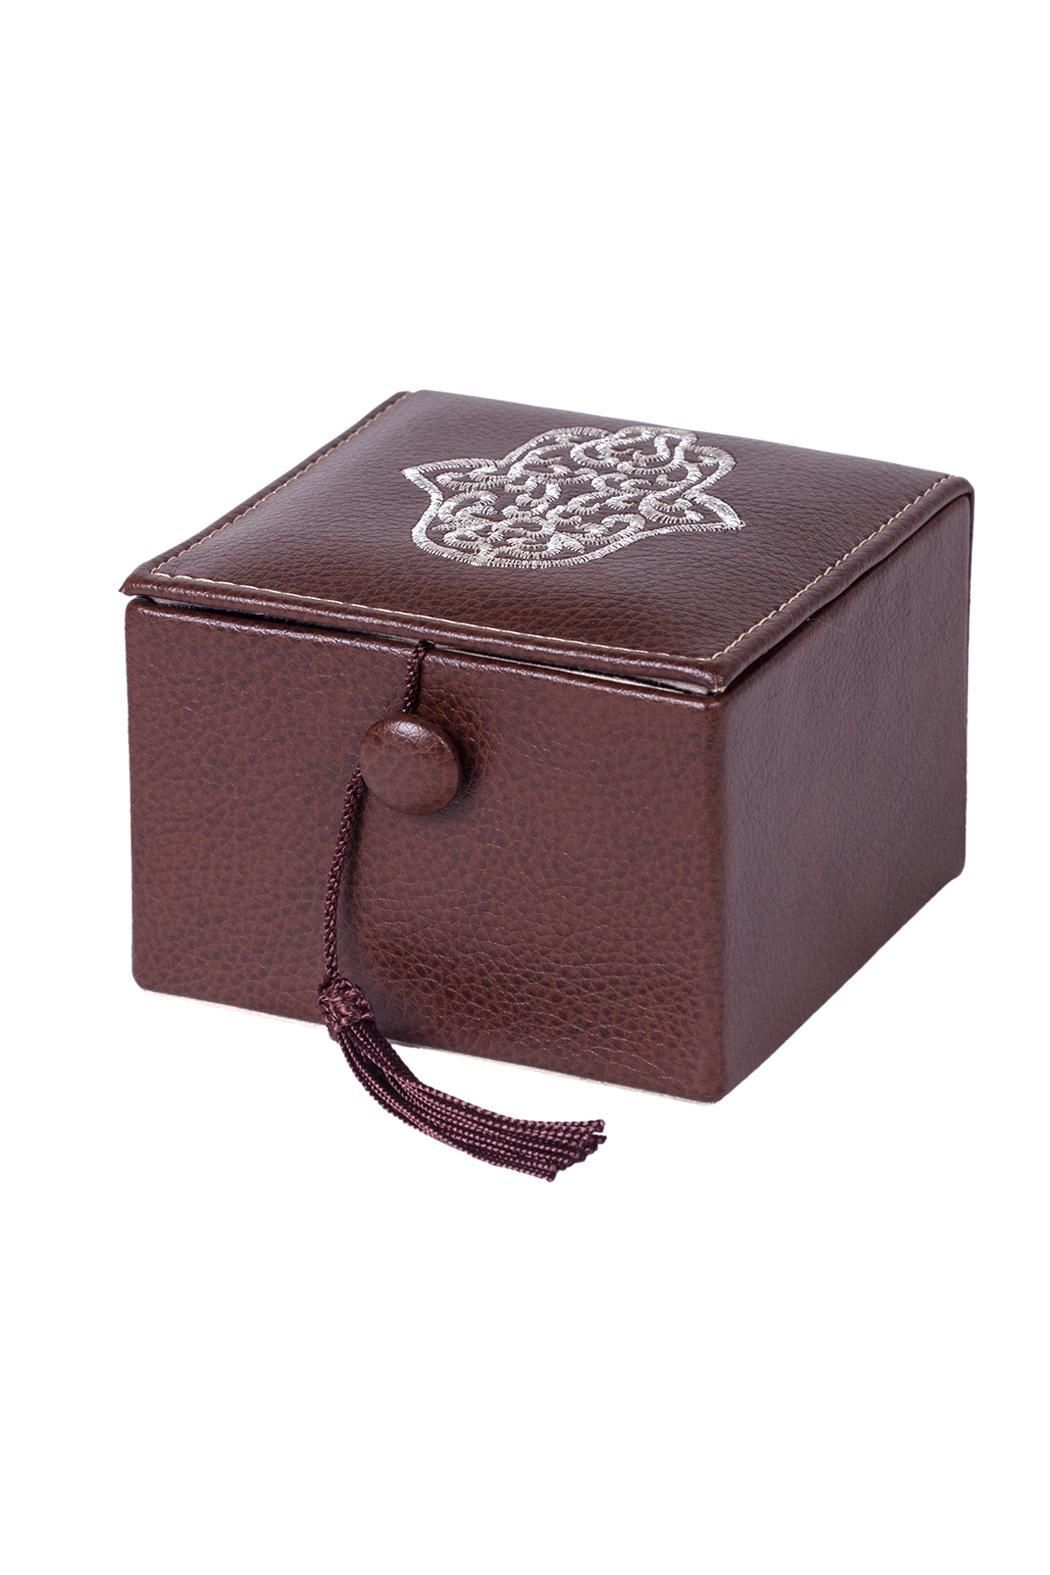 """Brown leather jewelry box with a hamsa embroidered top, lined interior and tassel tie closure.    Approx. Measures: 4"""" x 3"""" x 4"""".   Hamsa Jewelry Box  by Le Beau Maroc . Home & Gifts Florida"""